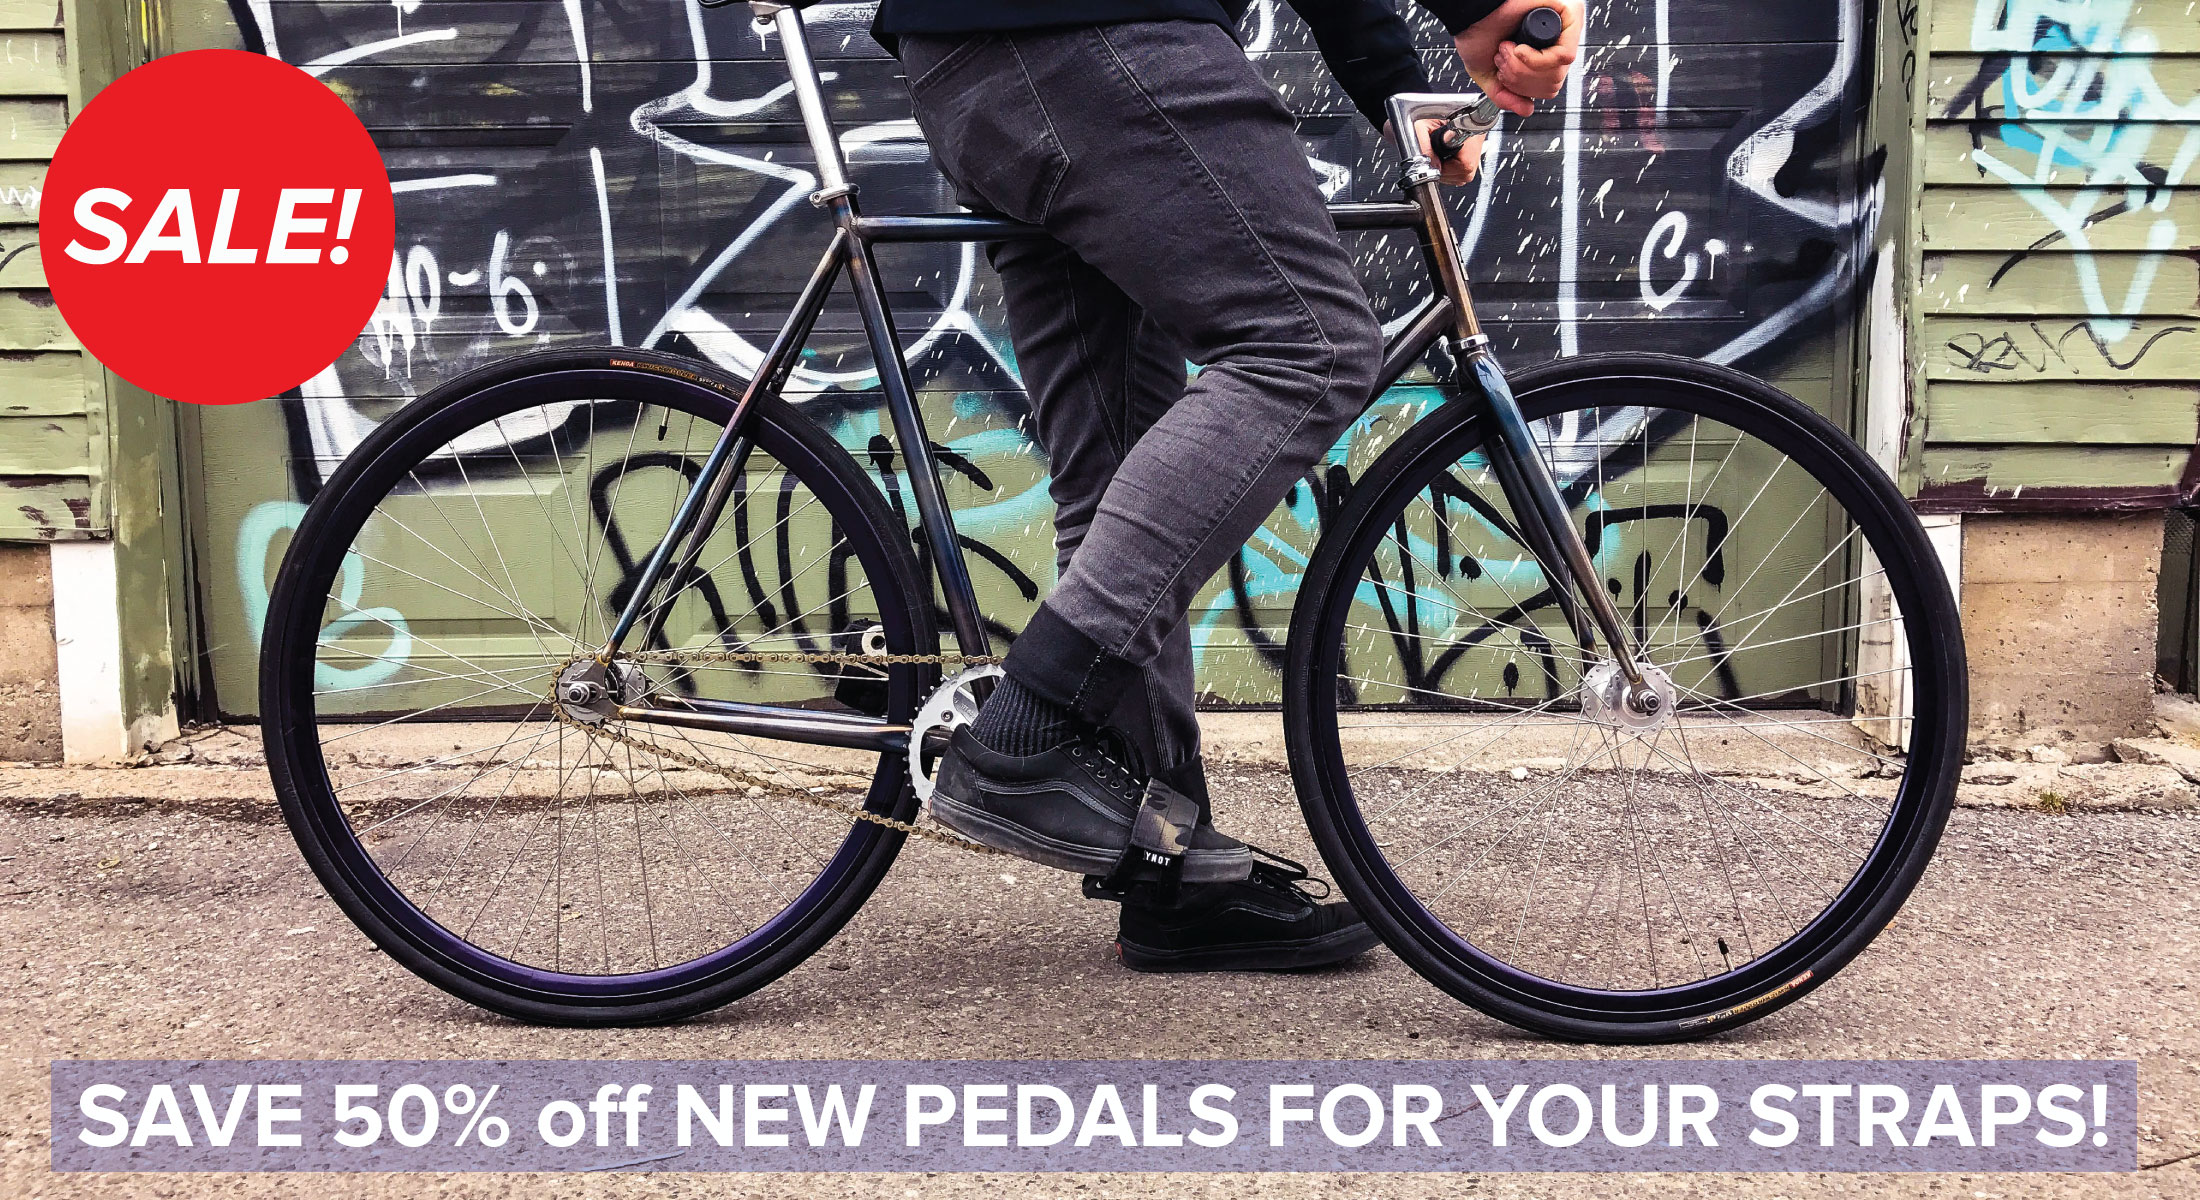 Pedals now on sale!